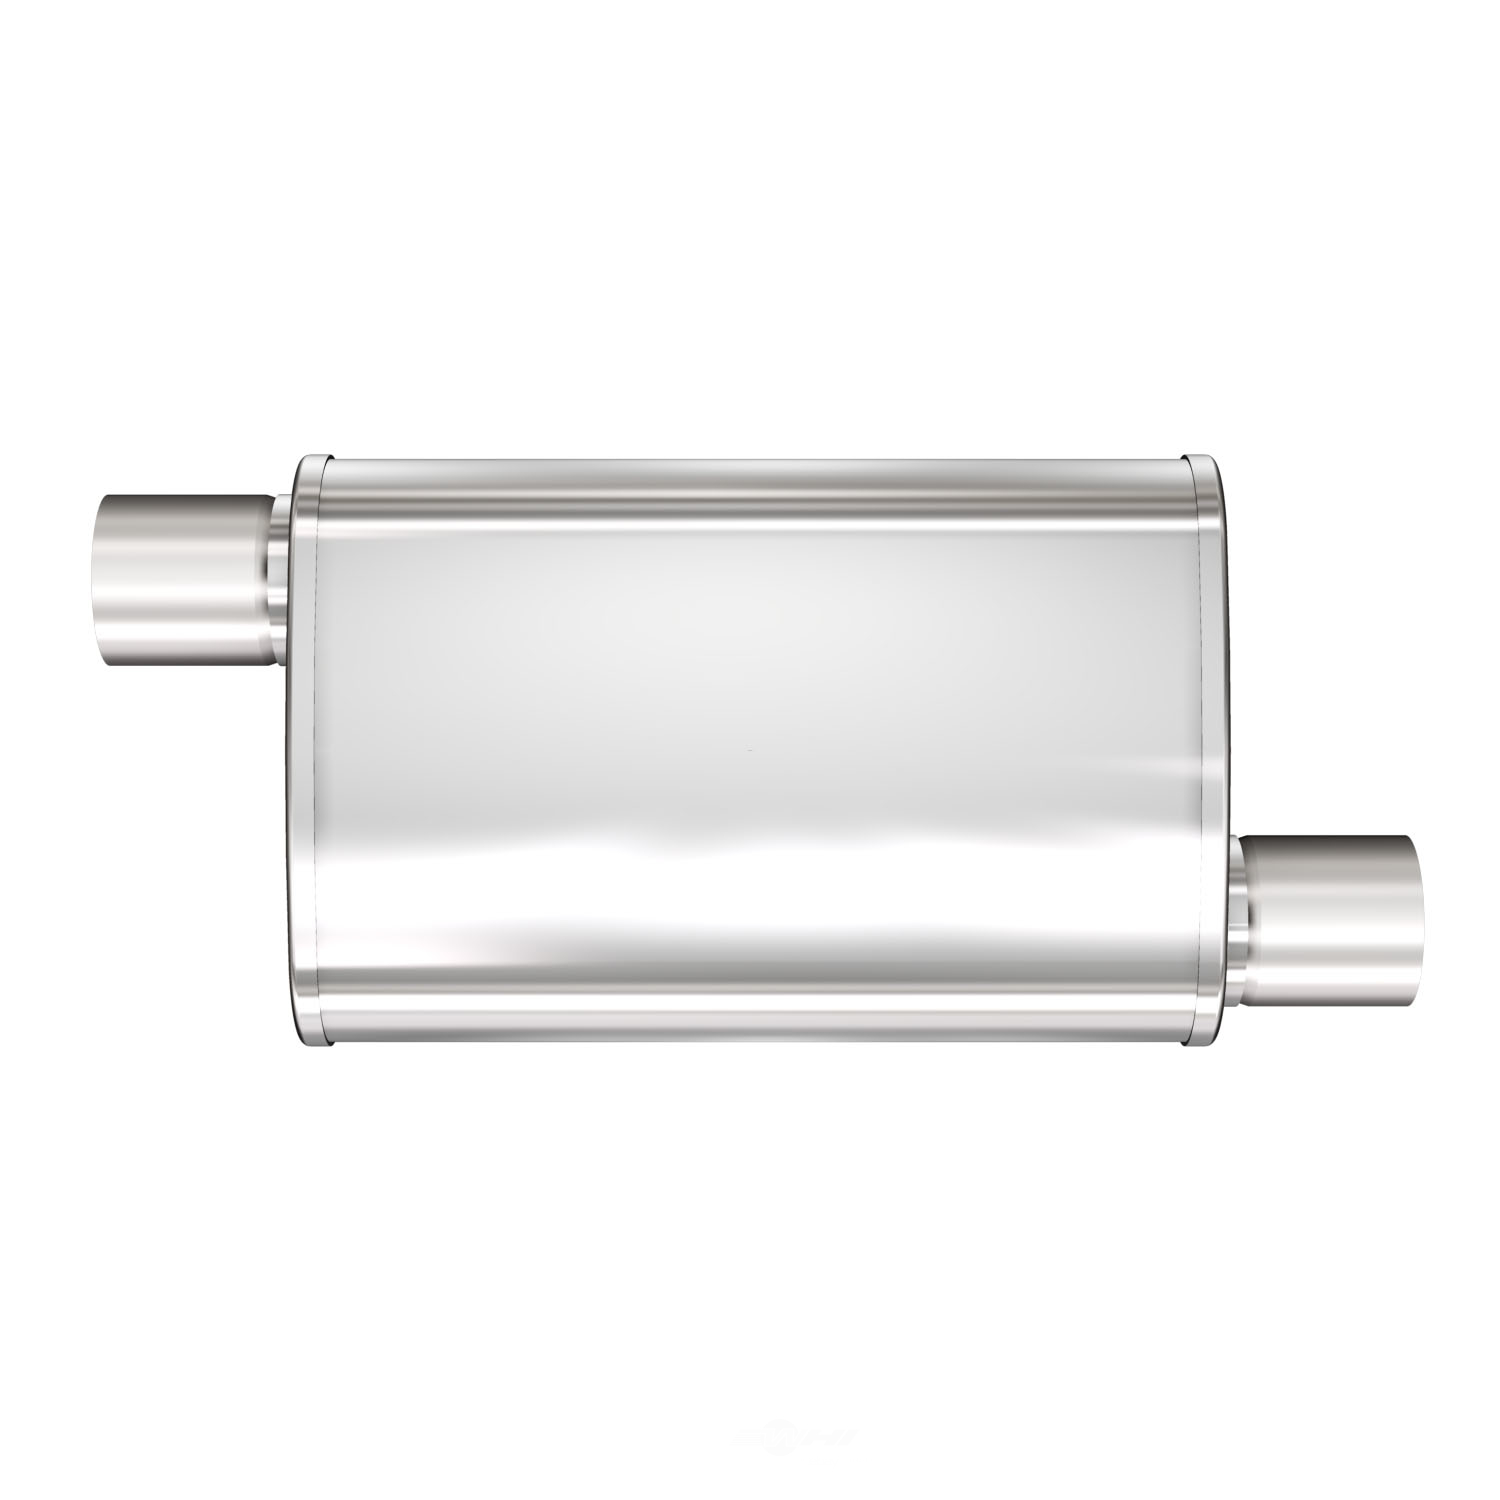 MAGNAFLOW PERF. EXHAUST - XL Satin Finish Oval Exhaust Muffler - MGF 13266